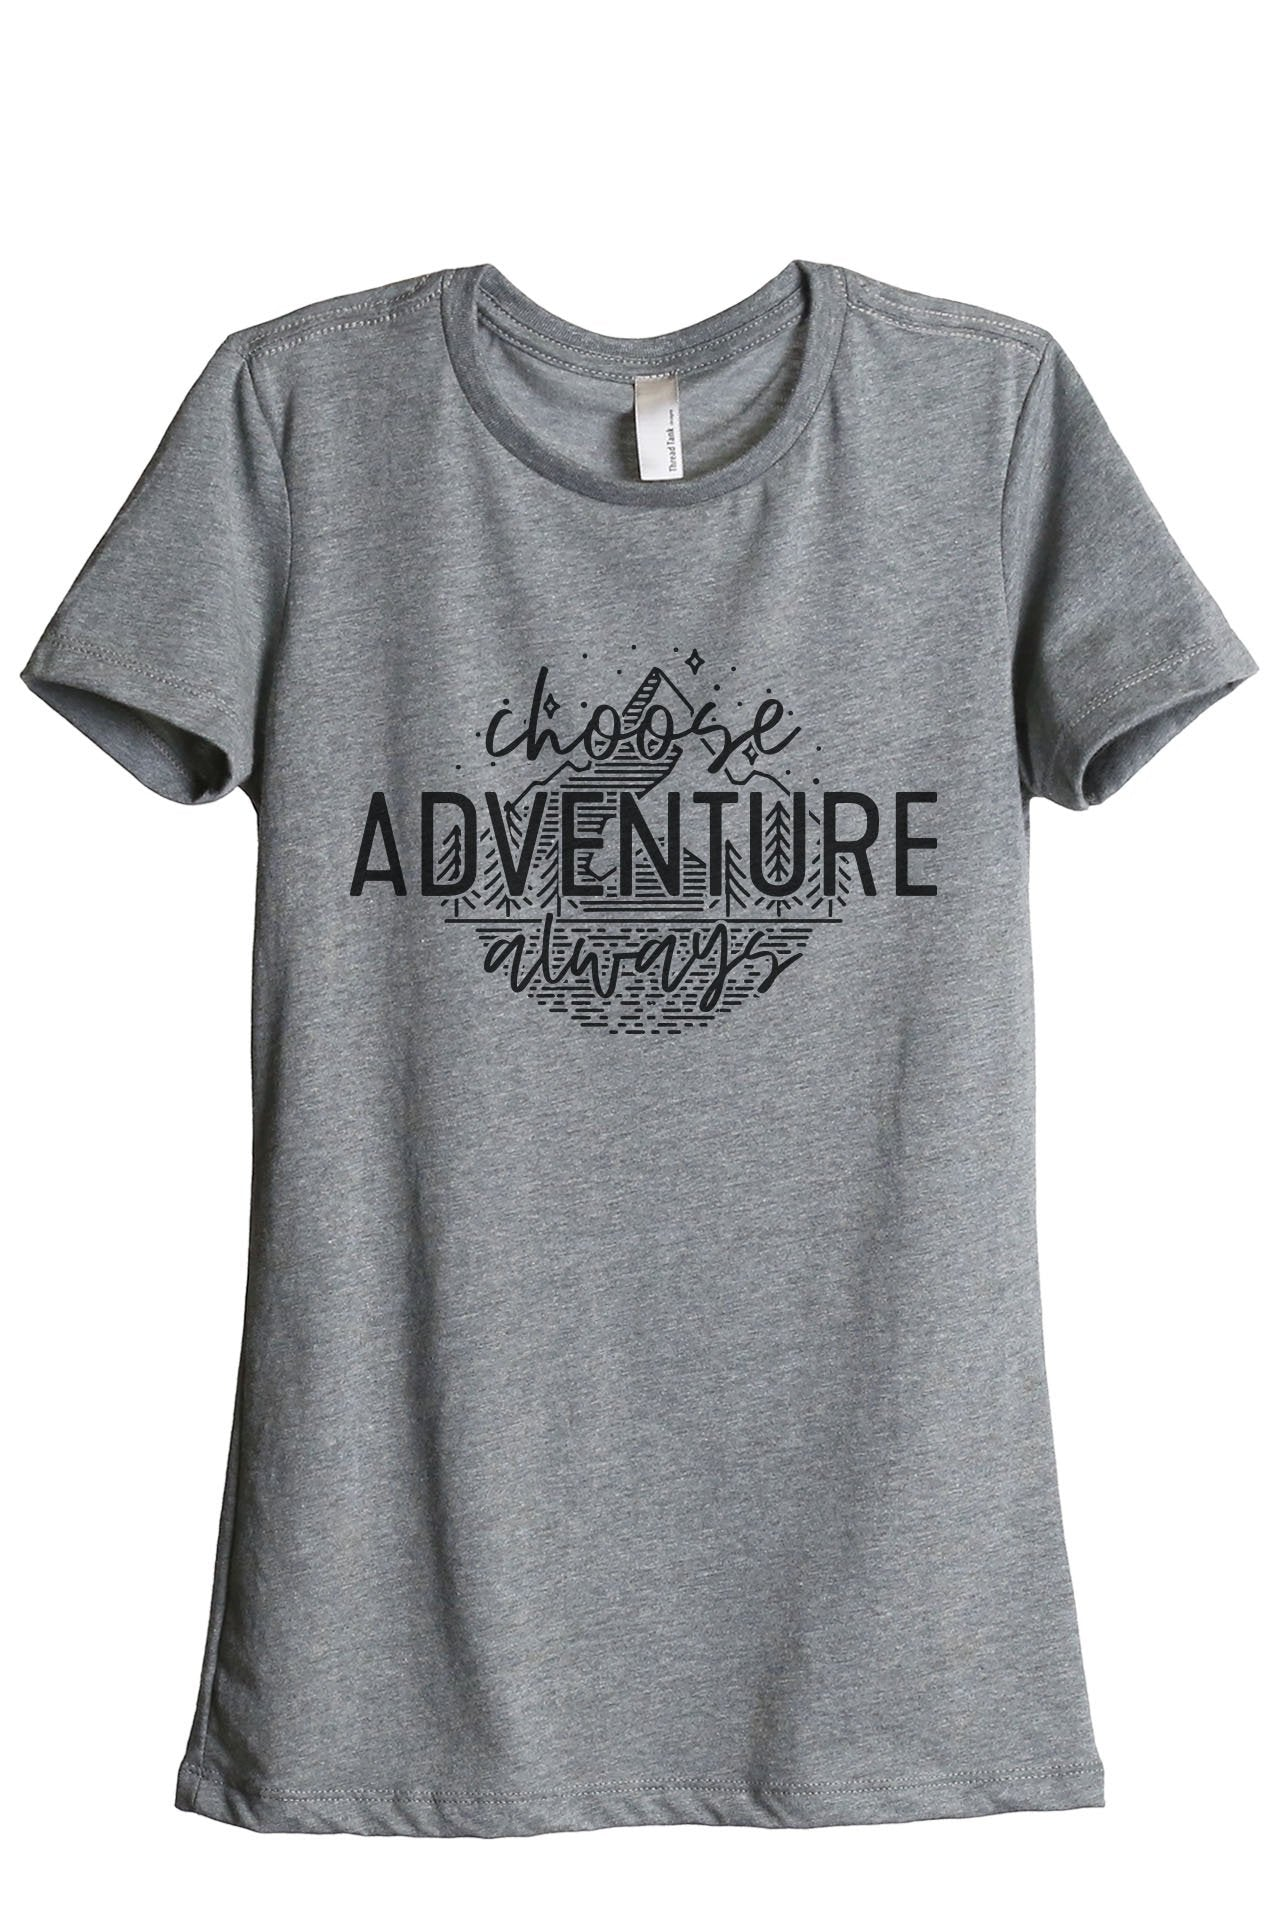 Choose Adventure Always - Thread Tank | Stories You Can Wear | T-Shirts, Tank Tops and Sweatshirts